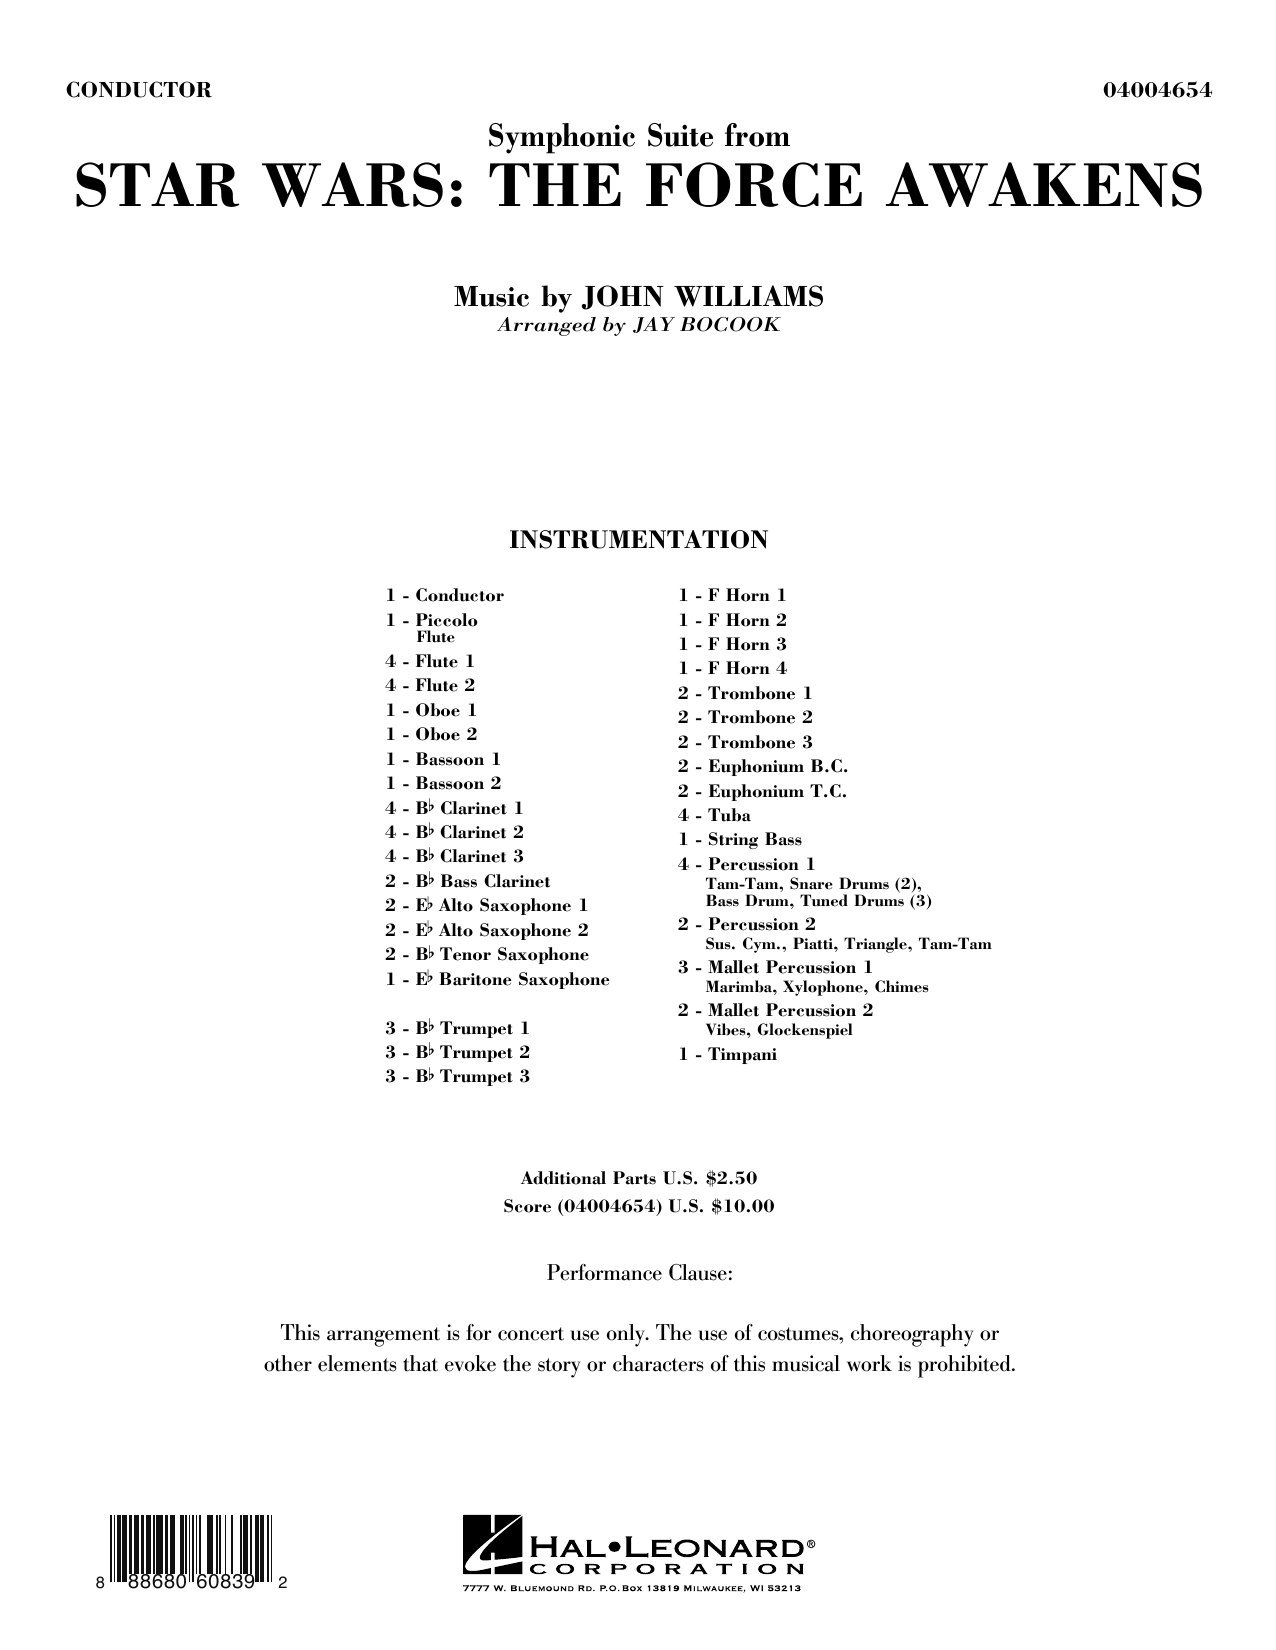 Jay Bocook Symphonic Suite from Star Wars: The Force Awakens - Conductor Score (Full Score) sheet music preview music notes and score for Concert Band including 36 page(s)